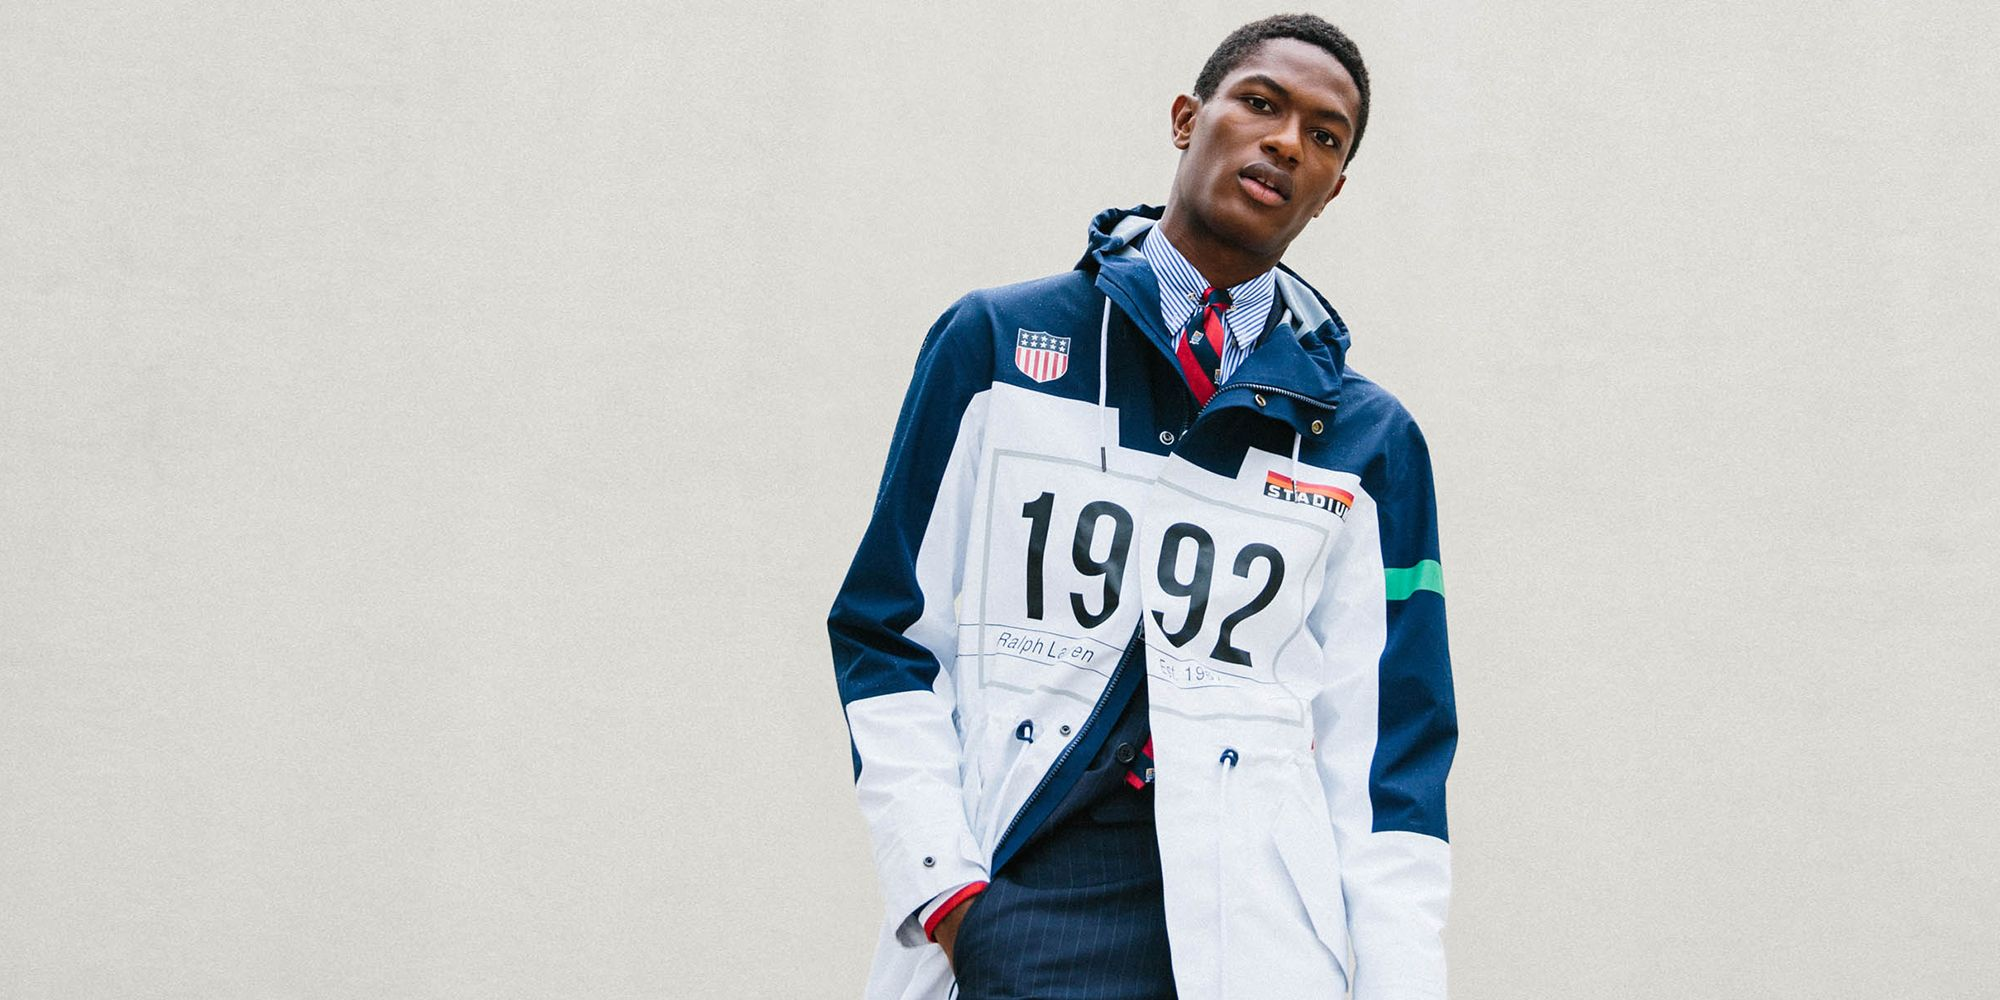 Ralph Lauren's New Throwback Collection Is a Polo Fanboy's Dream Come True